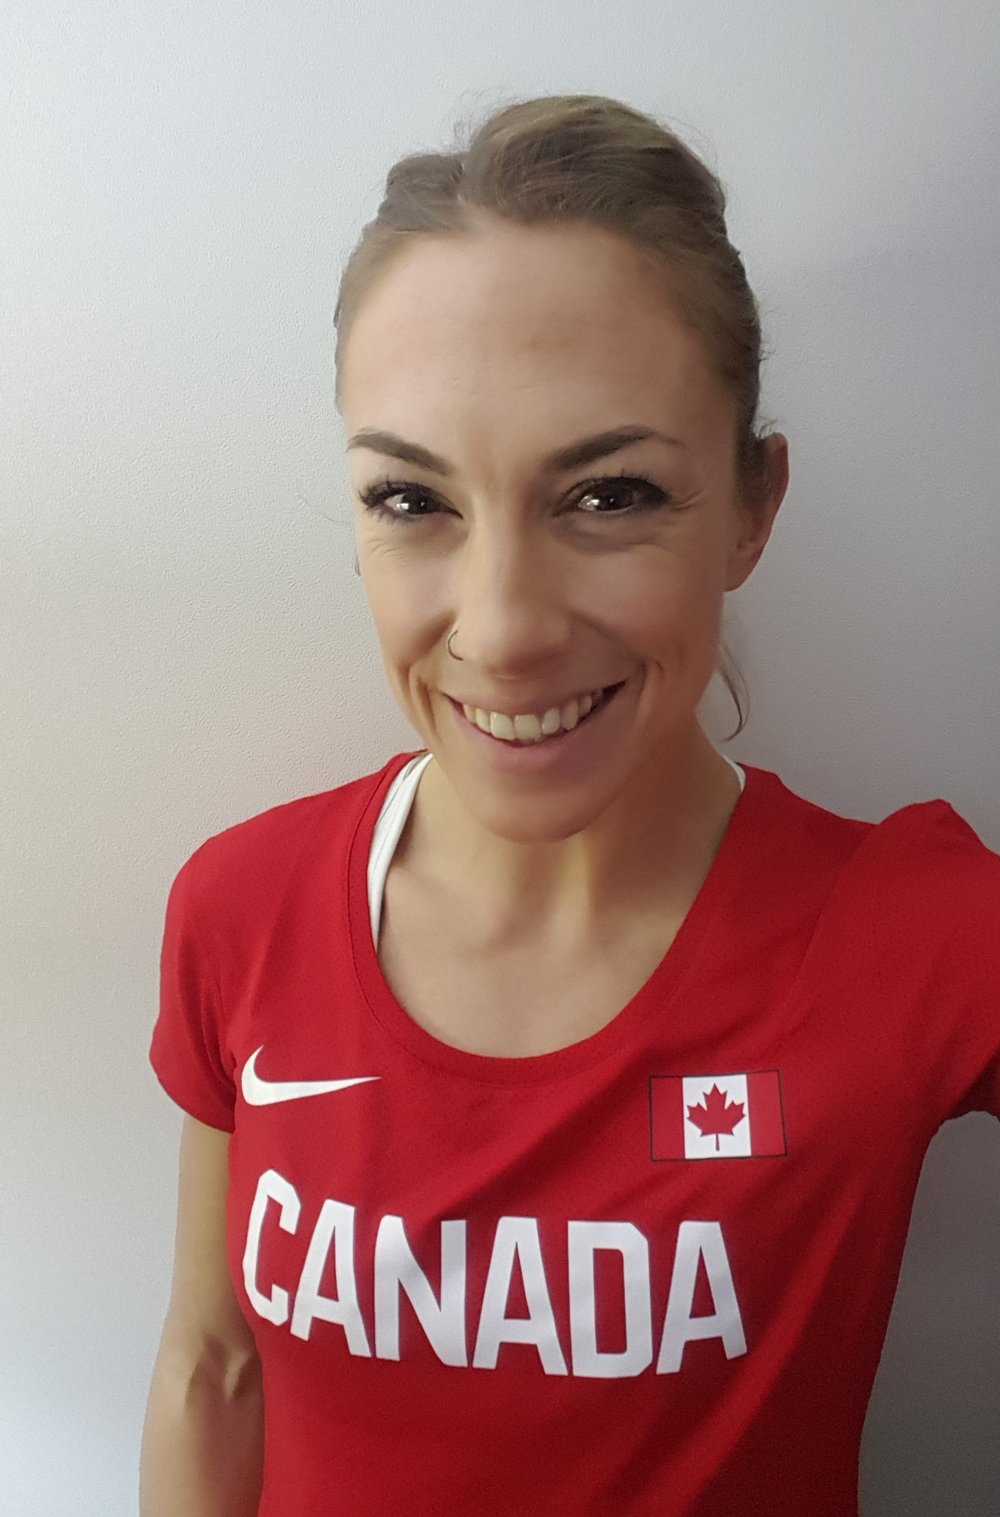 Kate is a Team Canada Track and Field athlete specializing in the 1500m and 5000m. She has represented Canada at 9 major international Games, and won a bronze medal in the 2014 Commonwealth Games. She is a 2-time Canadian champion, and the national indoor 1-mile record holder. Kate lives and trains in Toronto, and loves the athletic community in this city!